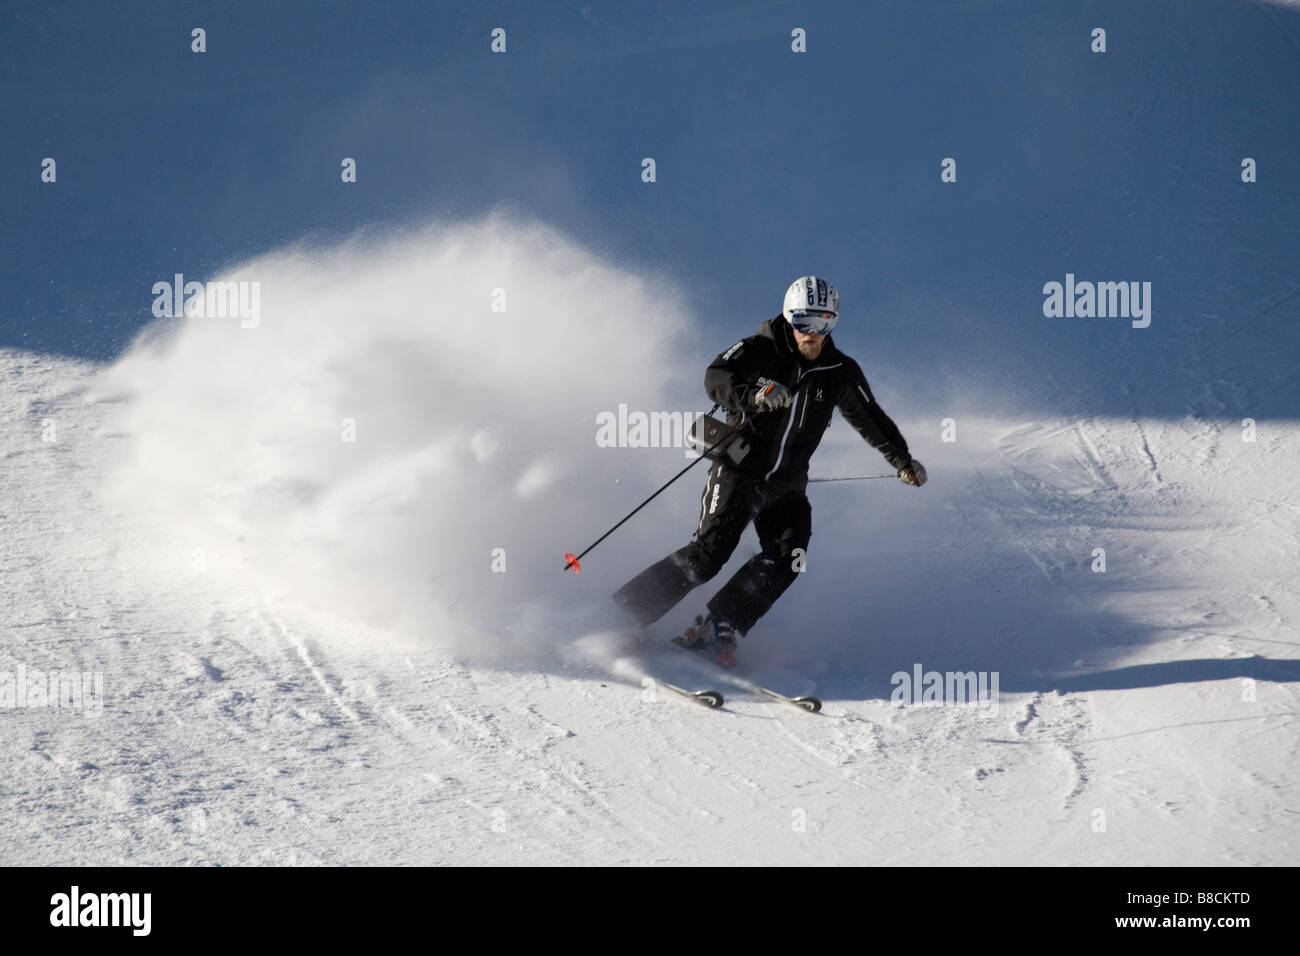 Austria EU January A bearded skier in a black ski suit on the piste - Stock Image